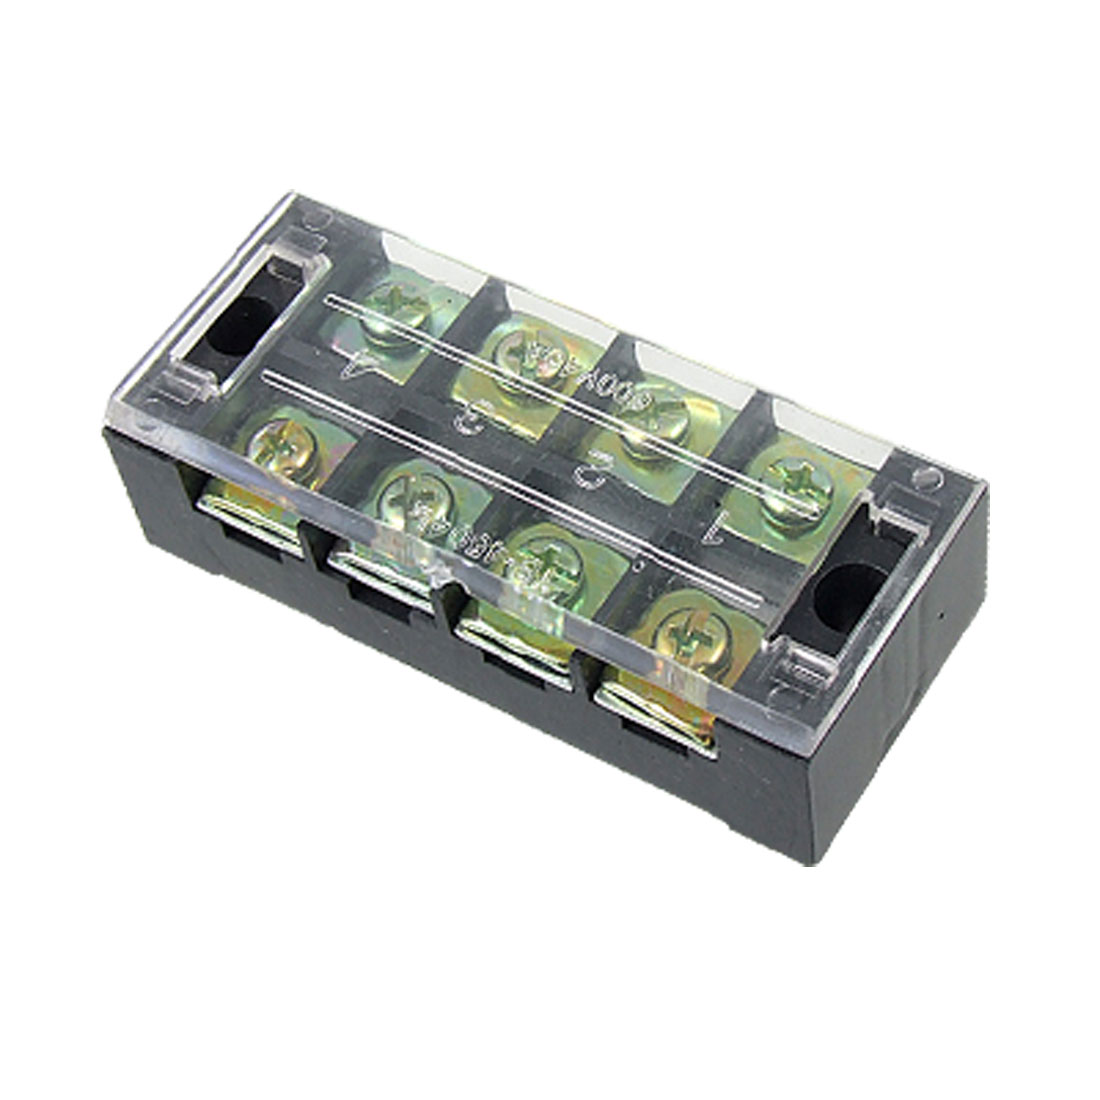 4 Position Double Row Barrier Screw Terminal Block